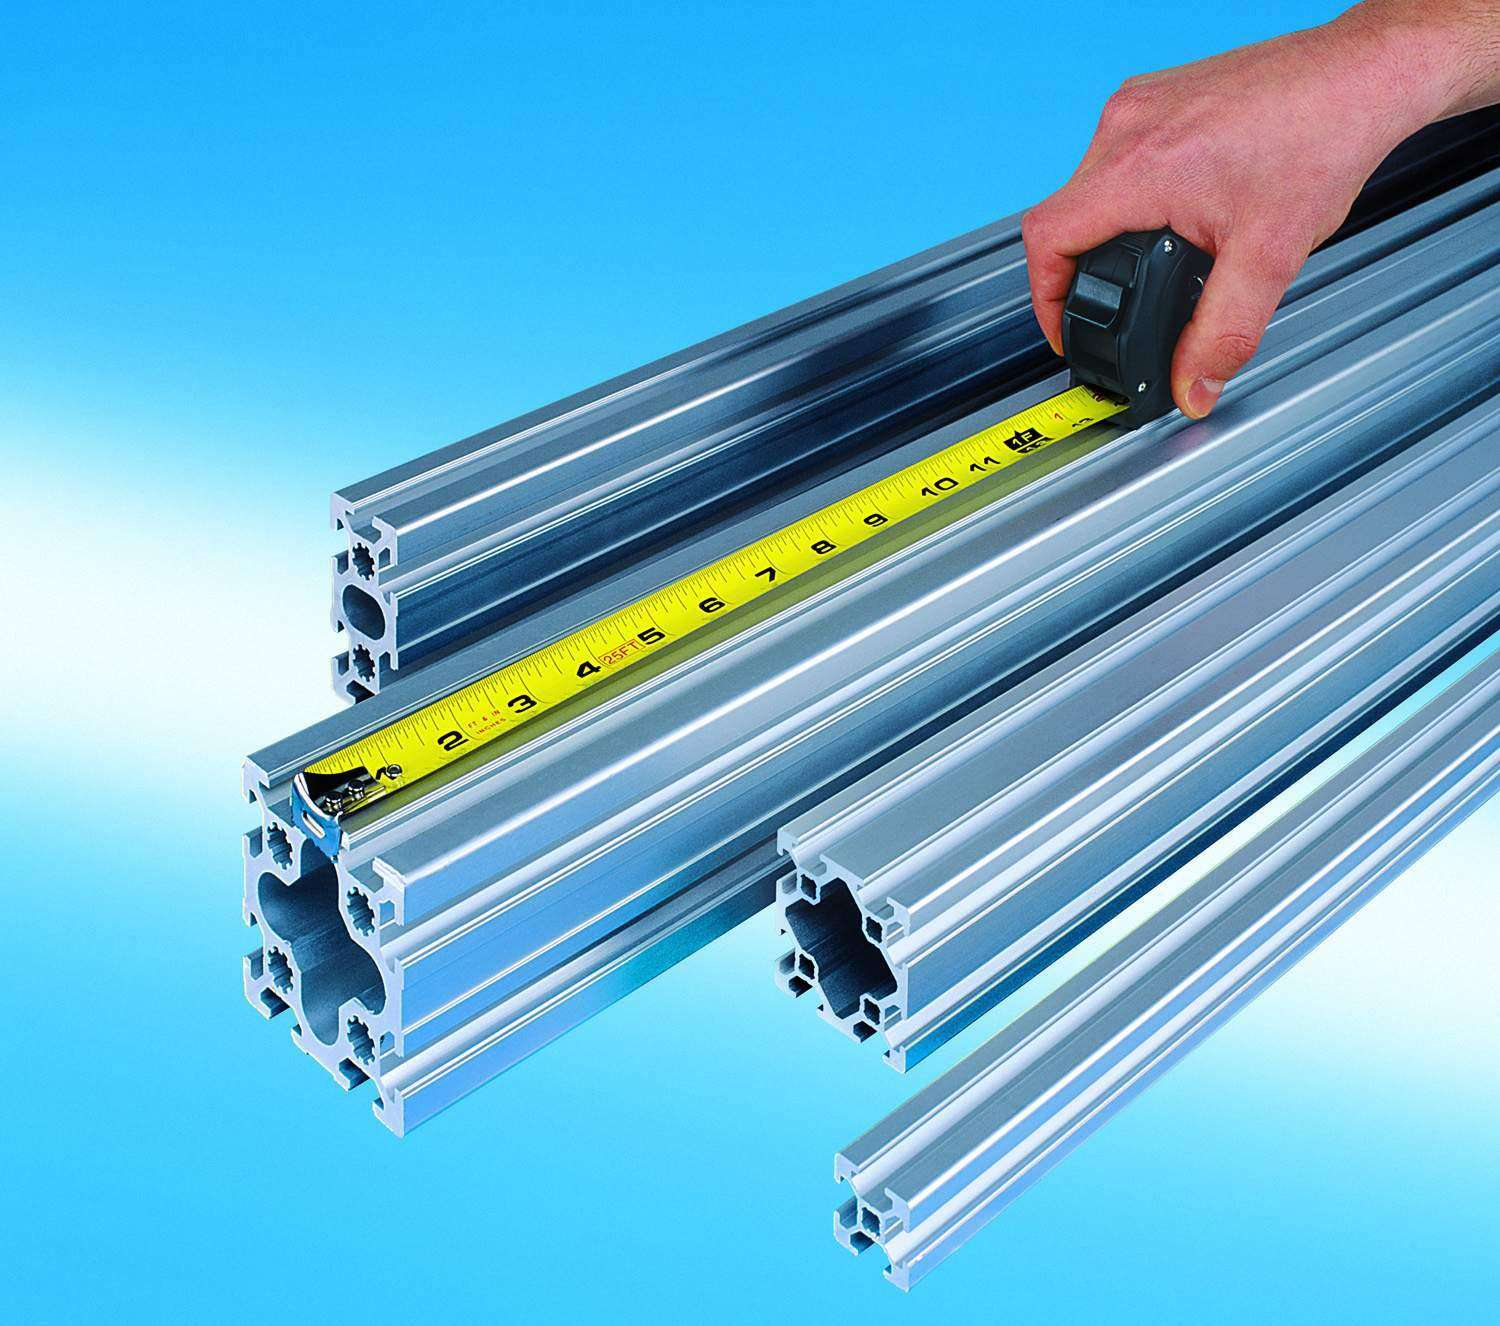 New Inch Series Aluminum Profiles From Bosch Rexroth